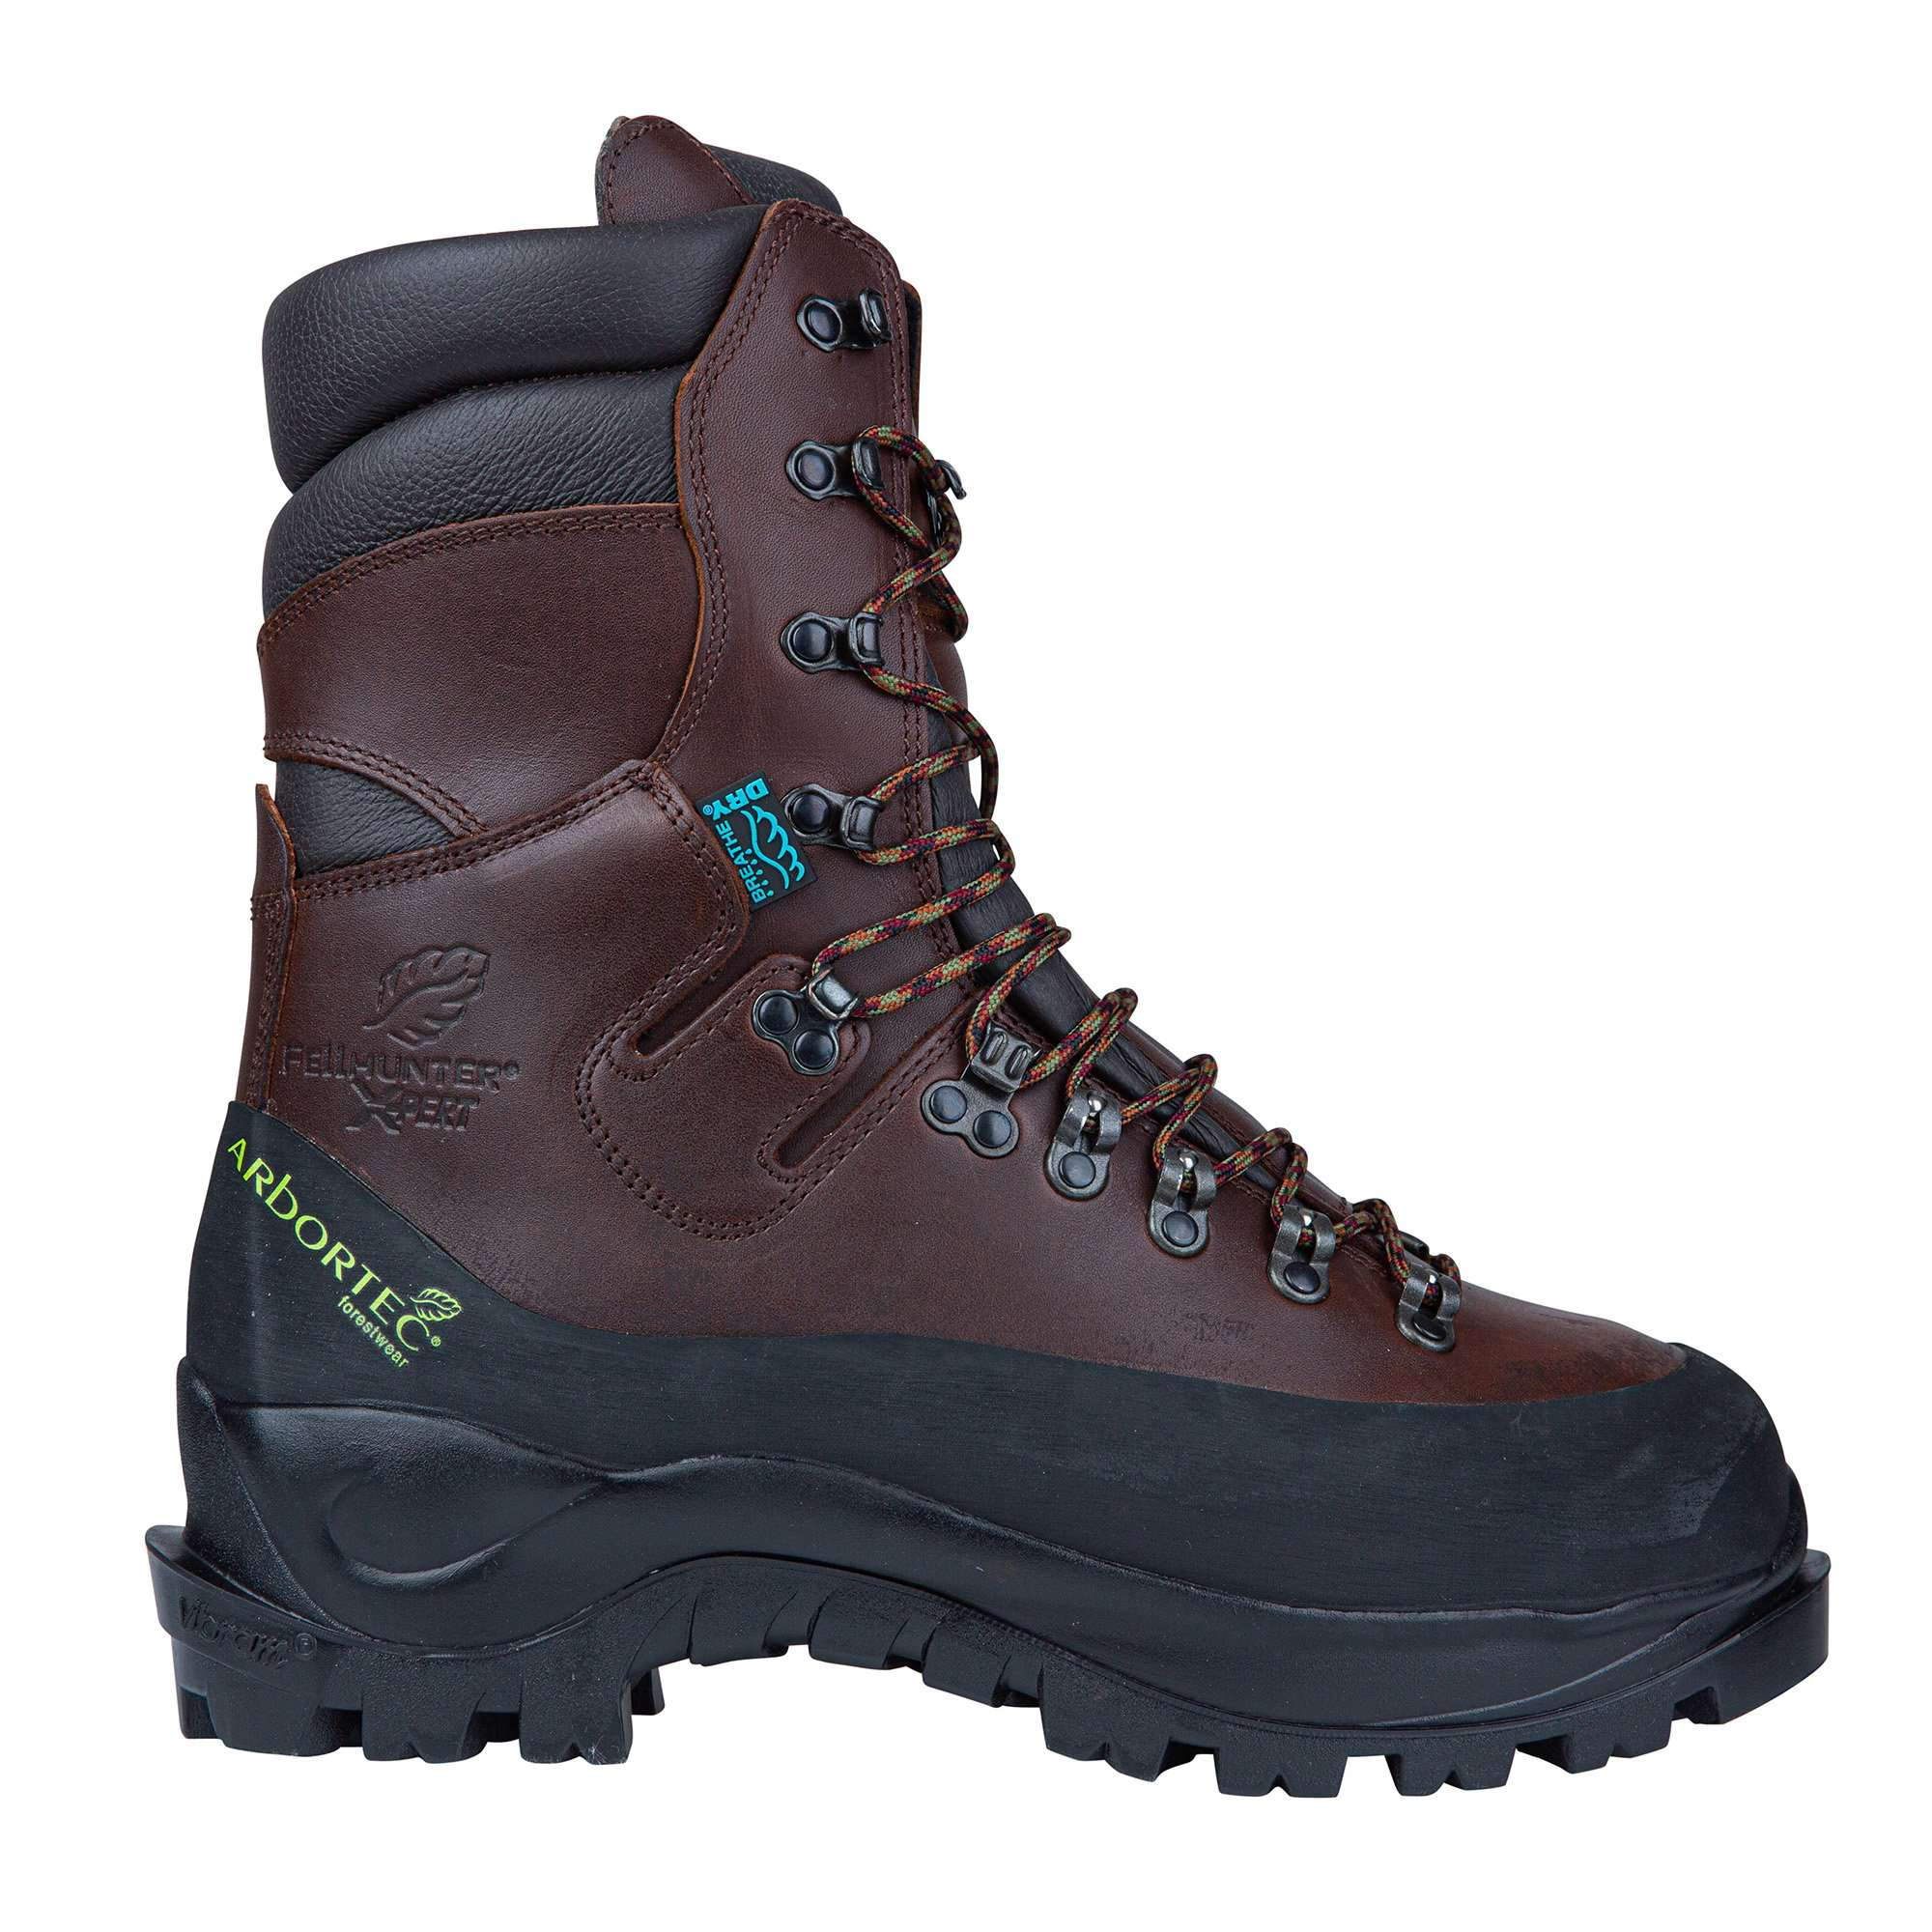 Fellhunter Expert Class 3 Chainsaw Boot - AT36500